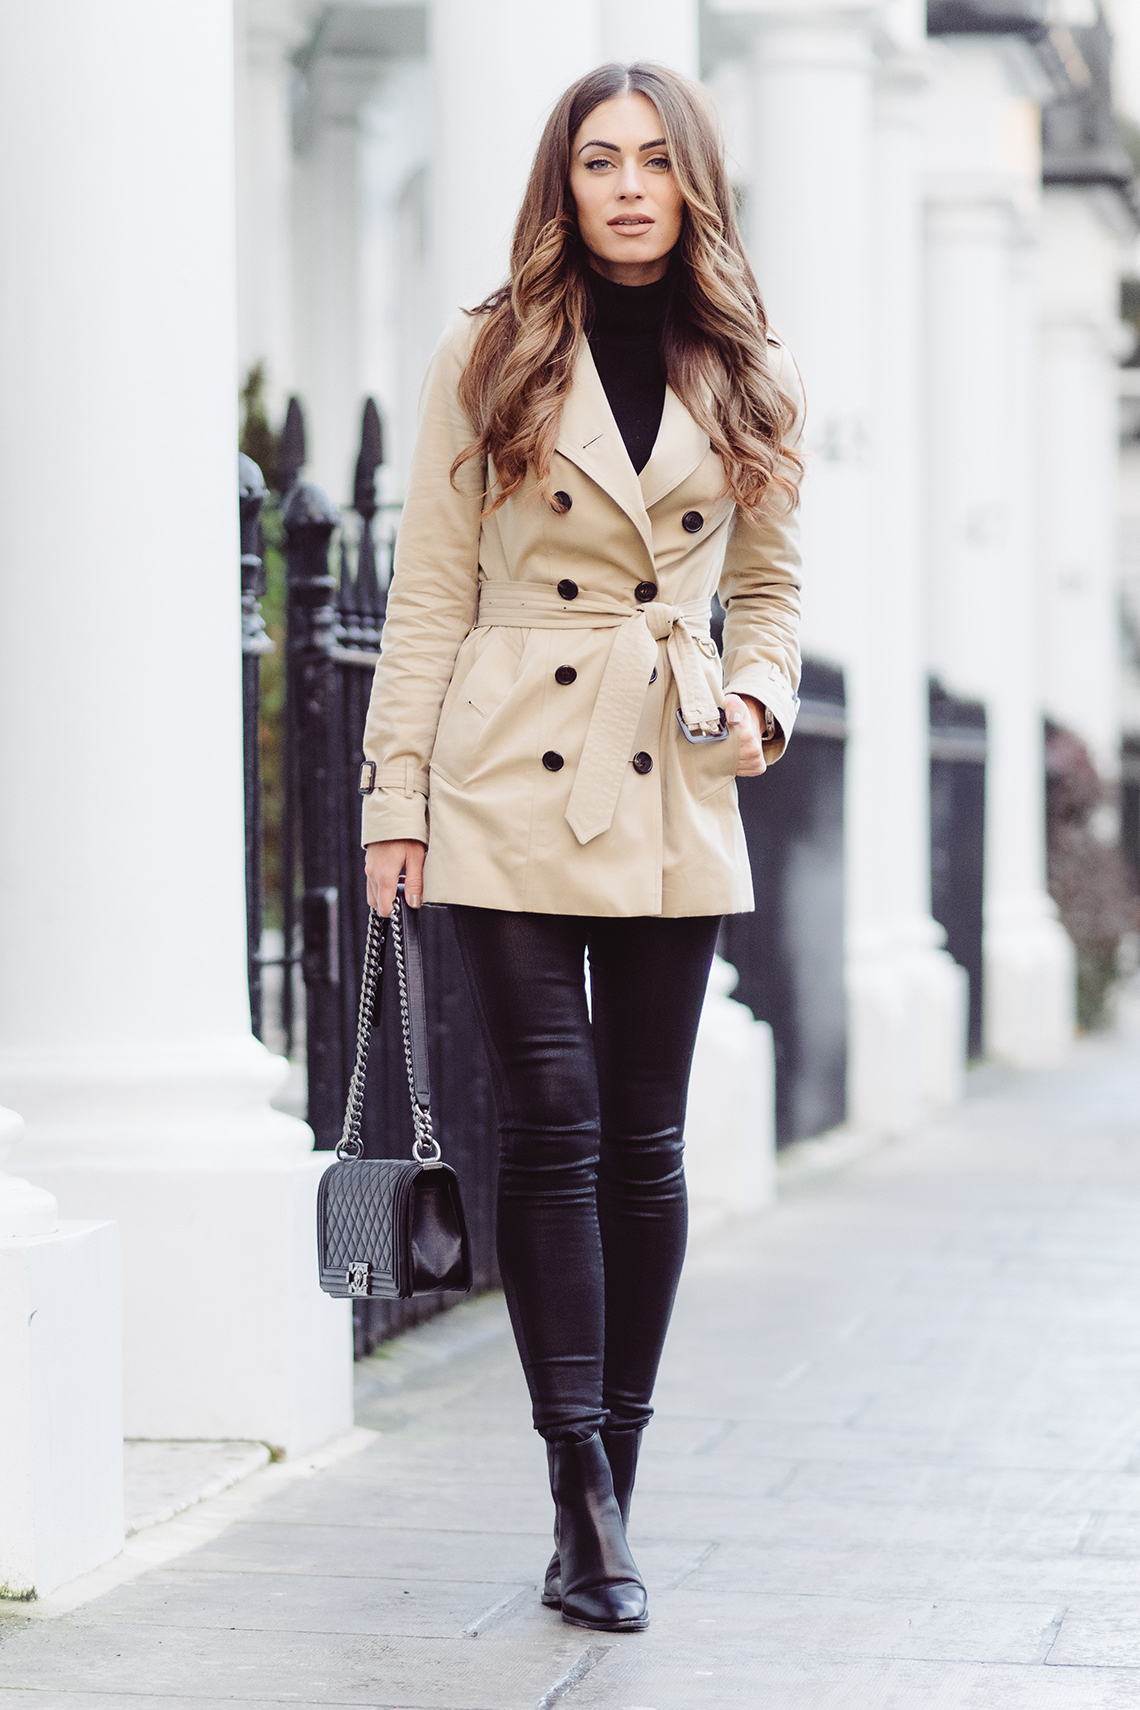 Wearing a classic beige trench coat is always a good option for getting those casual, sophisticated vibes. Lydia Lise Millen wears a Burberry trench with black denim jeans and sleek leather Chelsea boots. Trench: Burberry via Farfetch, Denim: Citizens of Humanity, Roll Neck: Jaeger, Boots: Saint Laurent, Bag: Chanel.